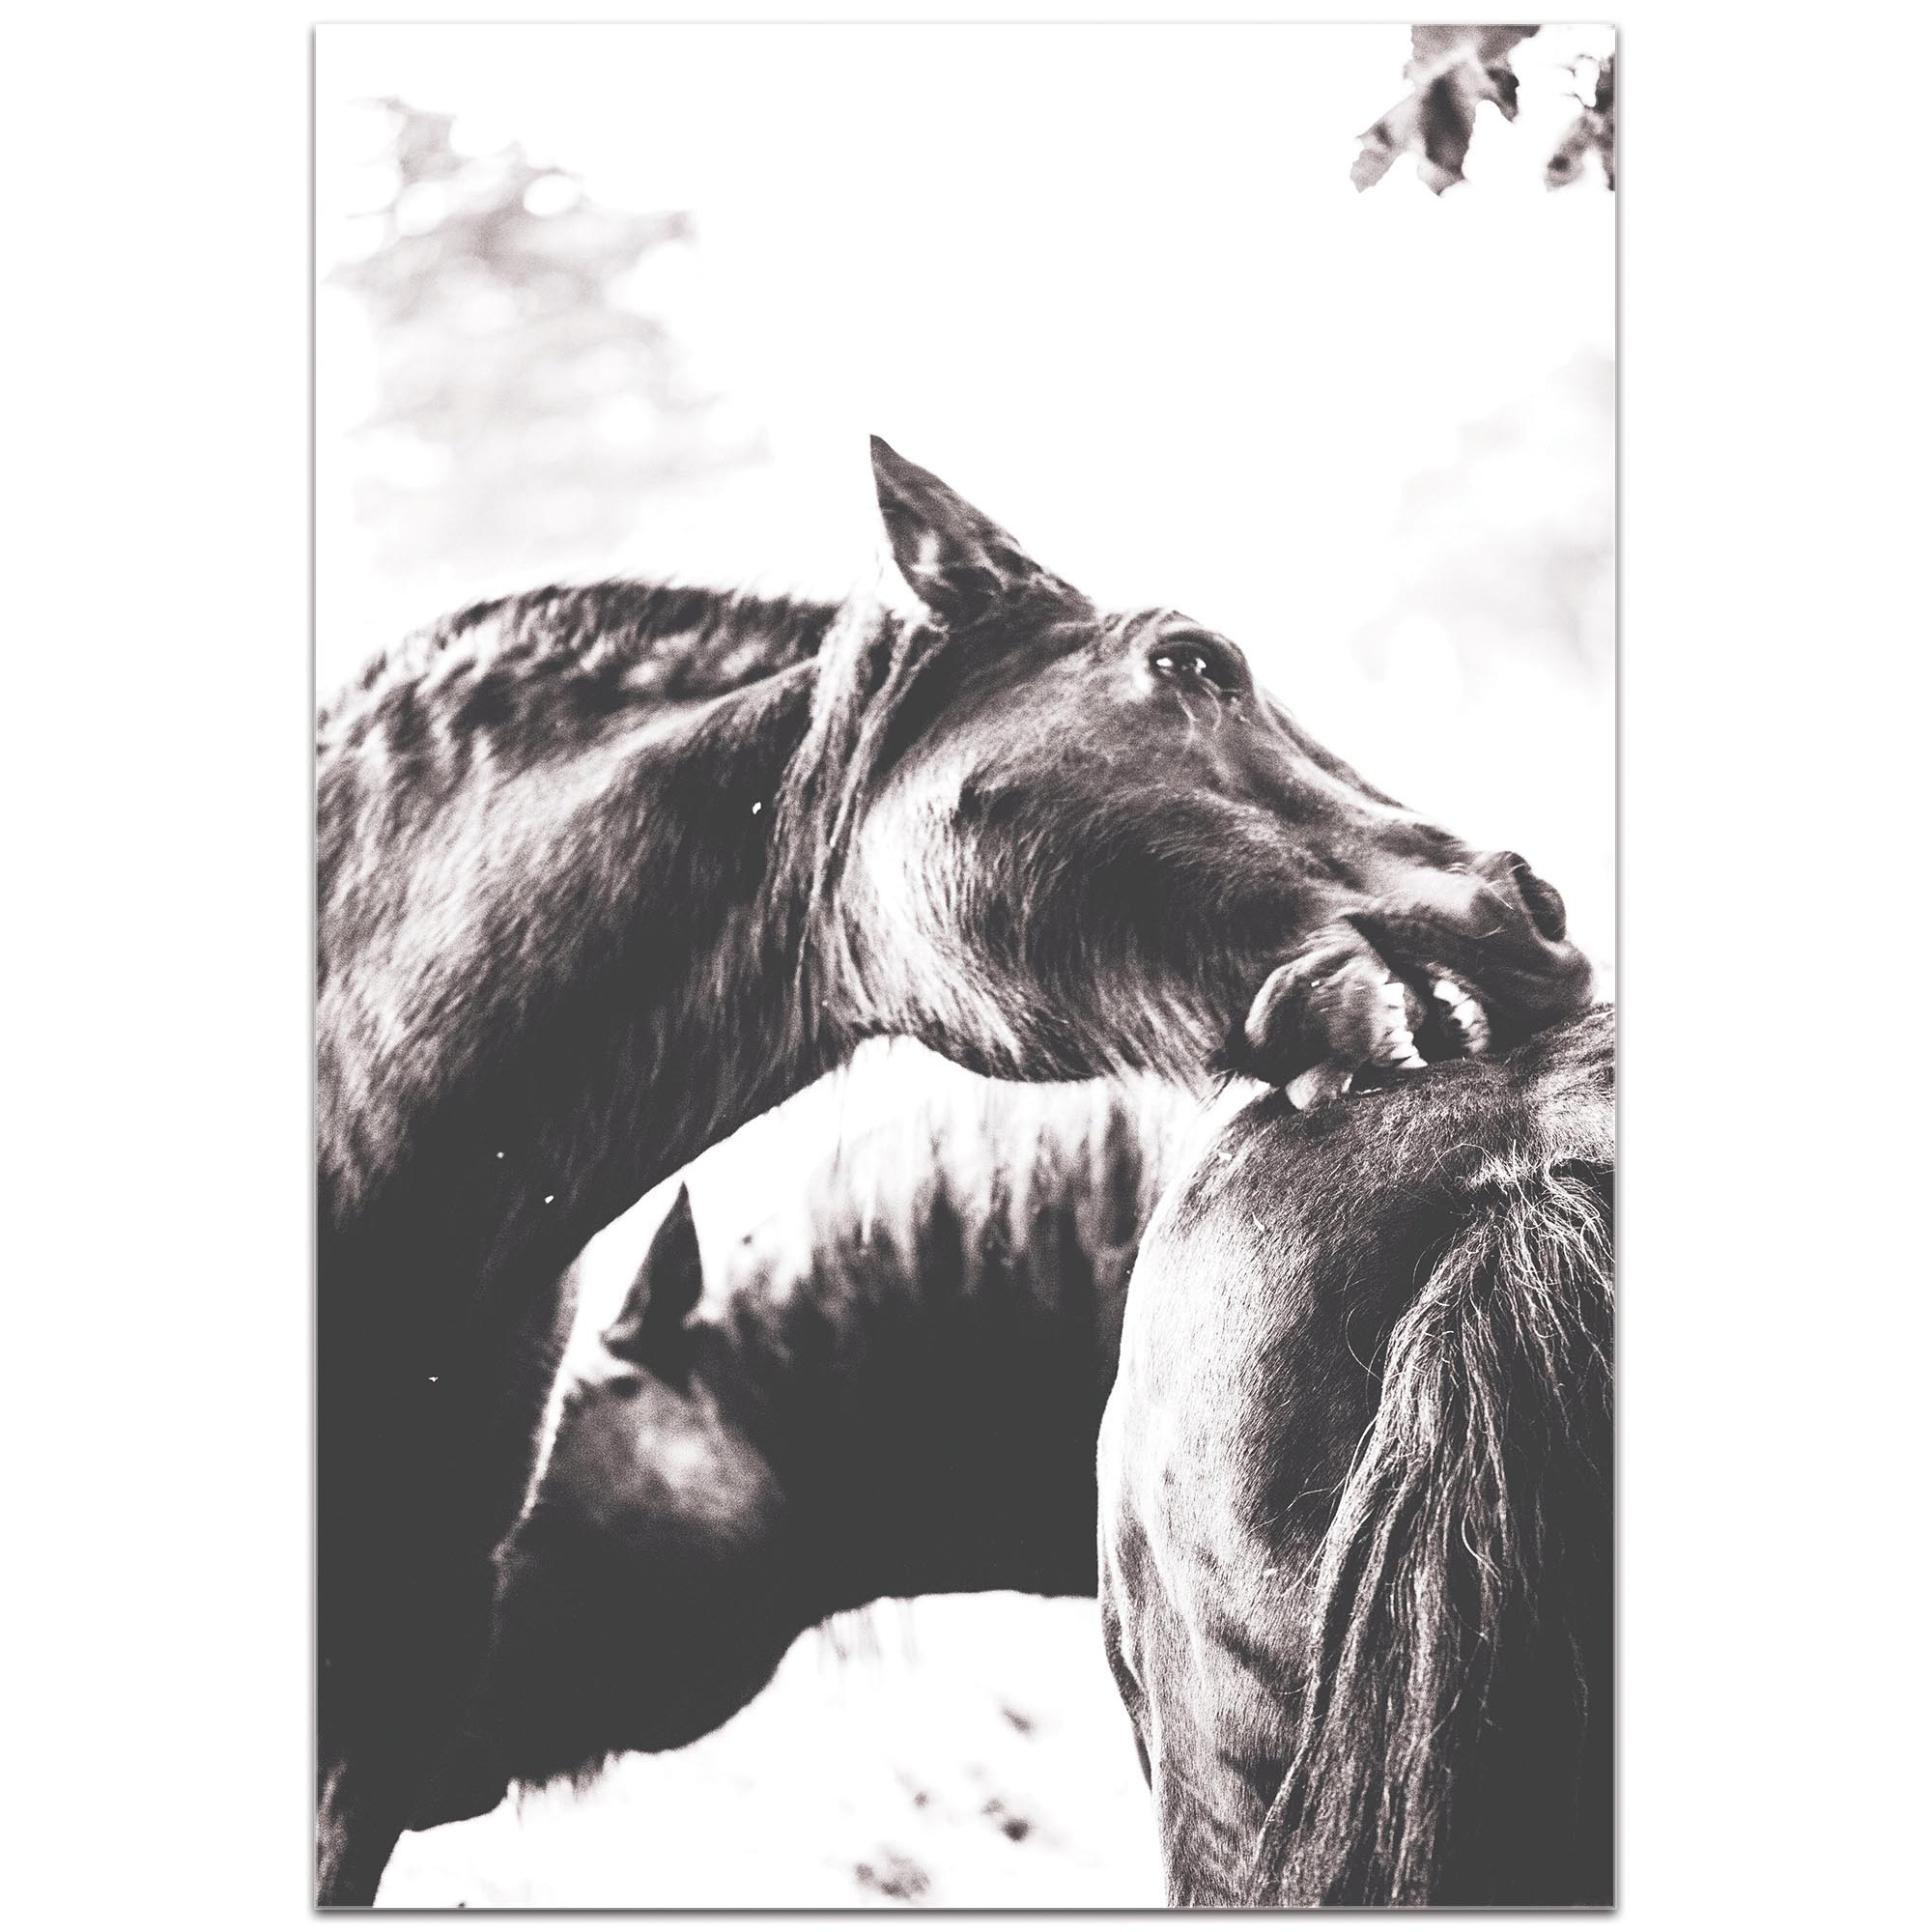 Contemporary Wall Art 'Horse Nibble' - Wildlife Decor on Metal or Plexiglass - Image 2